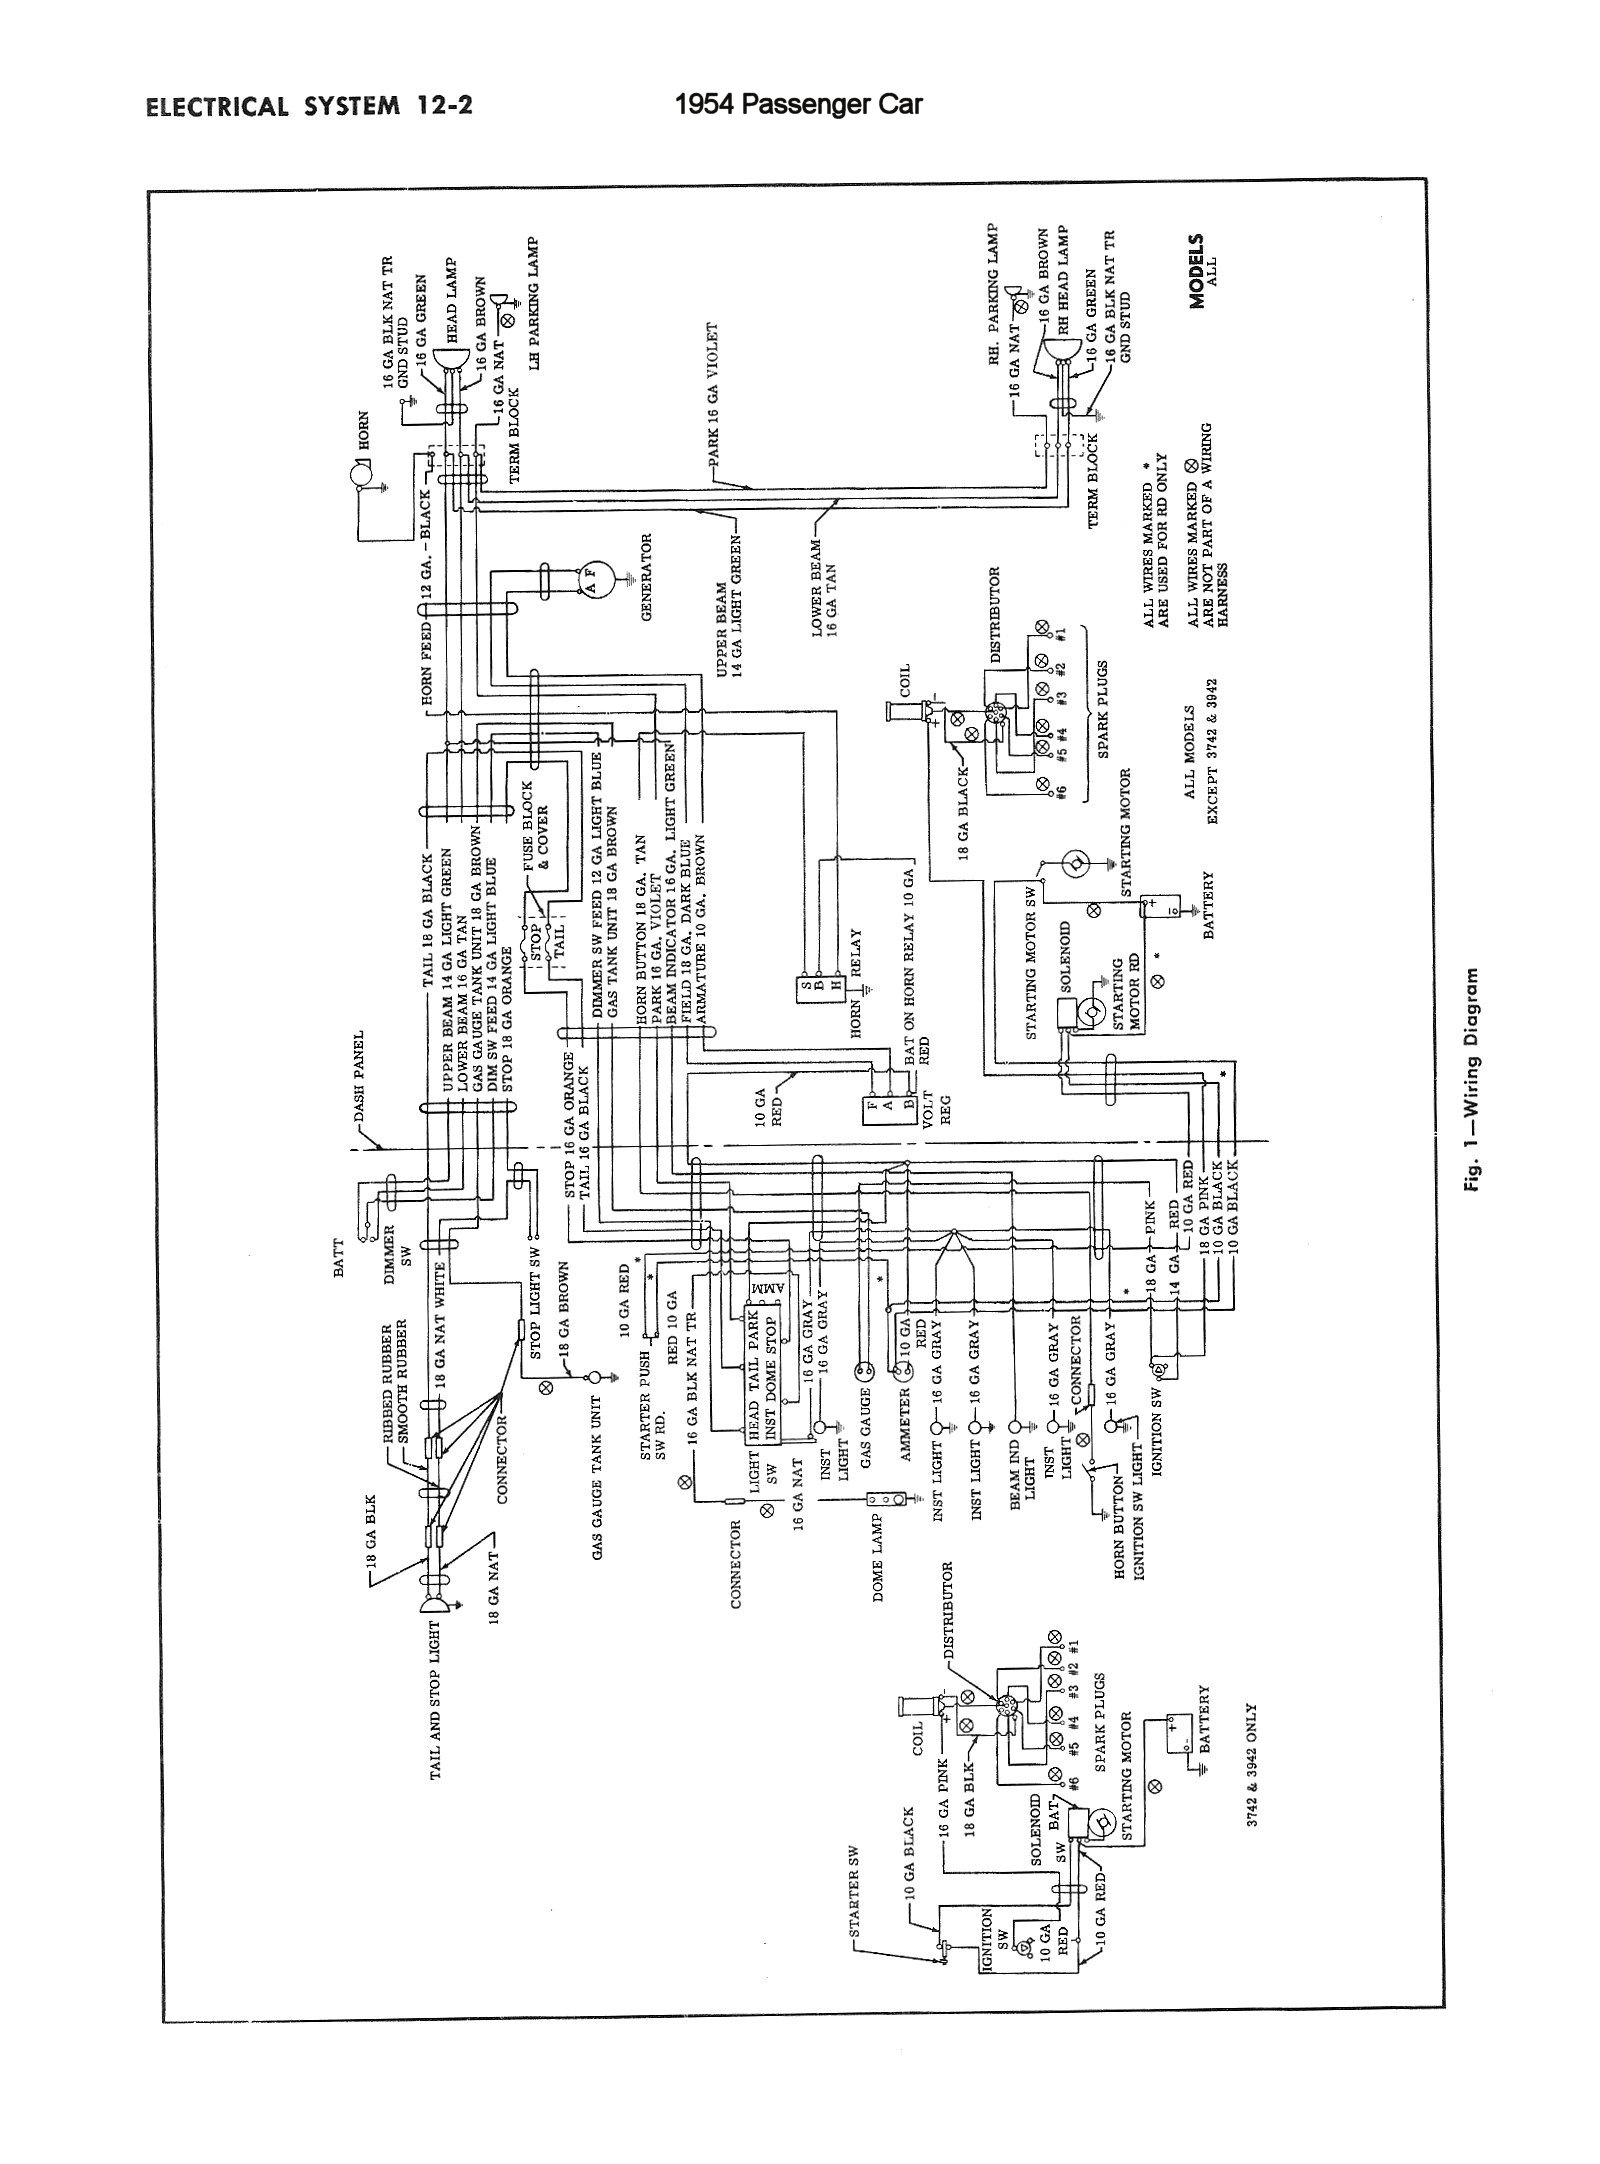 1953 Chevy Headlight Switch Wiring : 34 Wiring Diagram